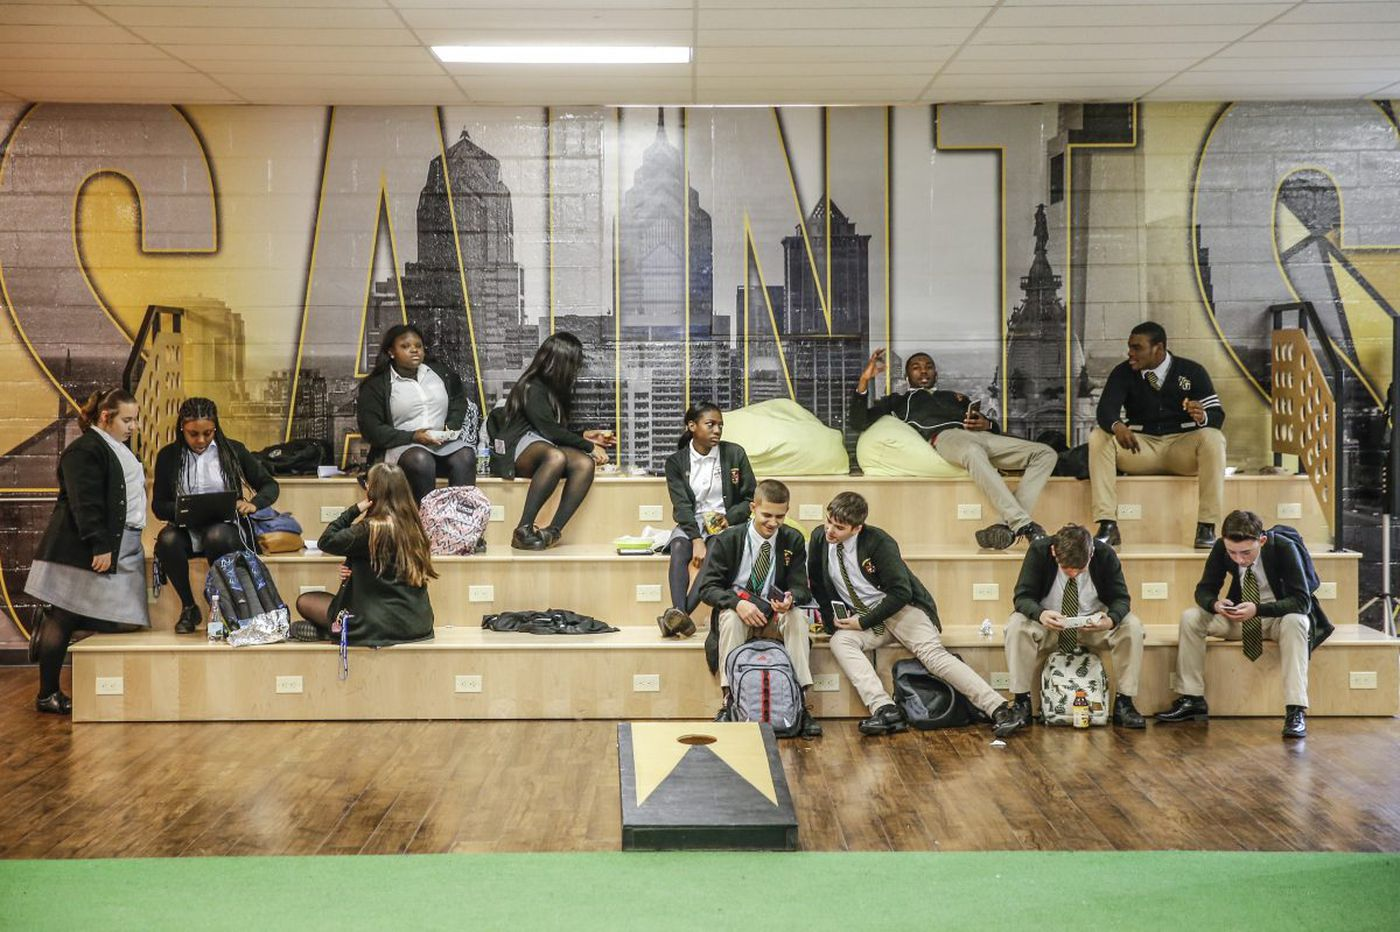 Reinventing S. Philly's last Catholic high school with Ikea furniture, murals and a rain garden